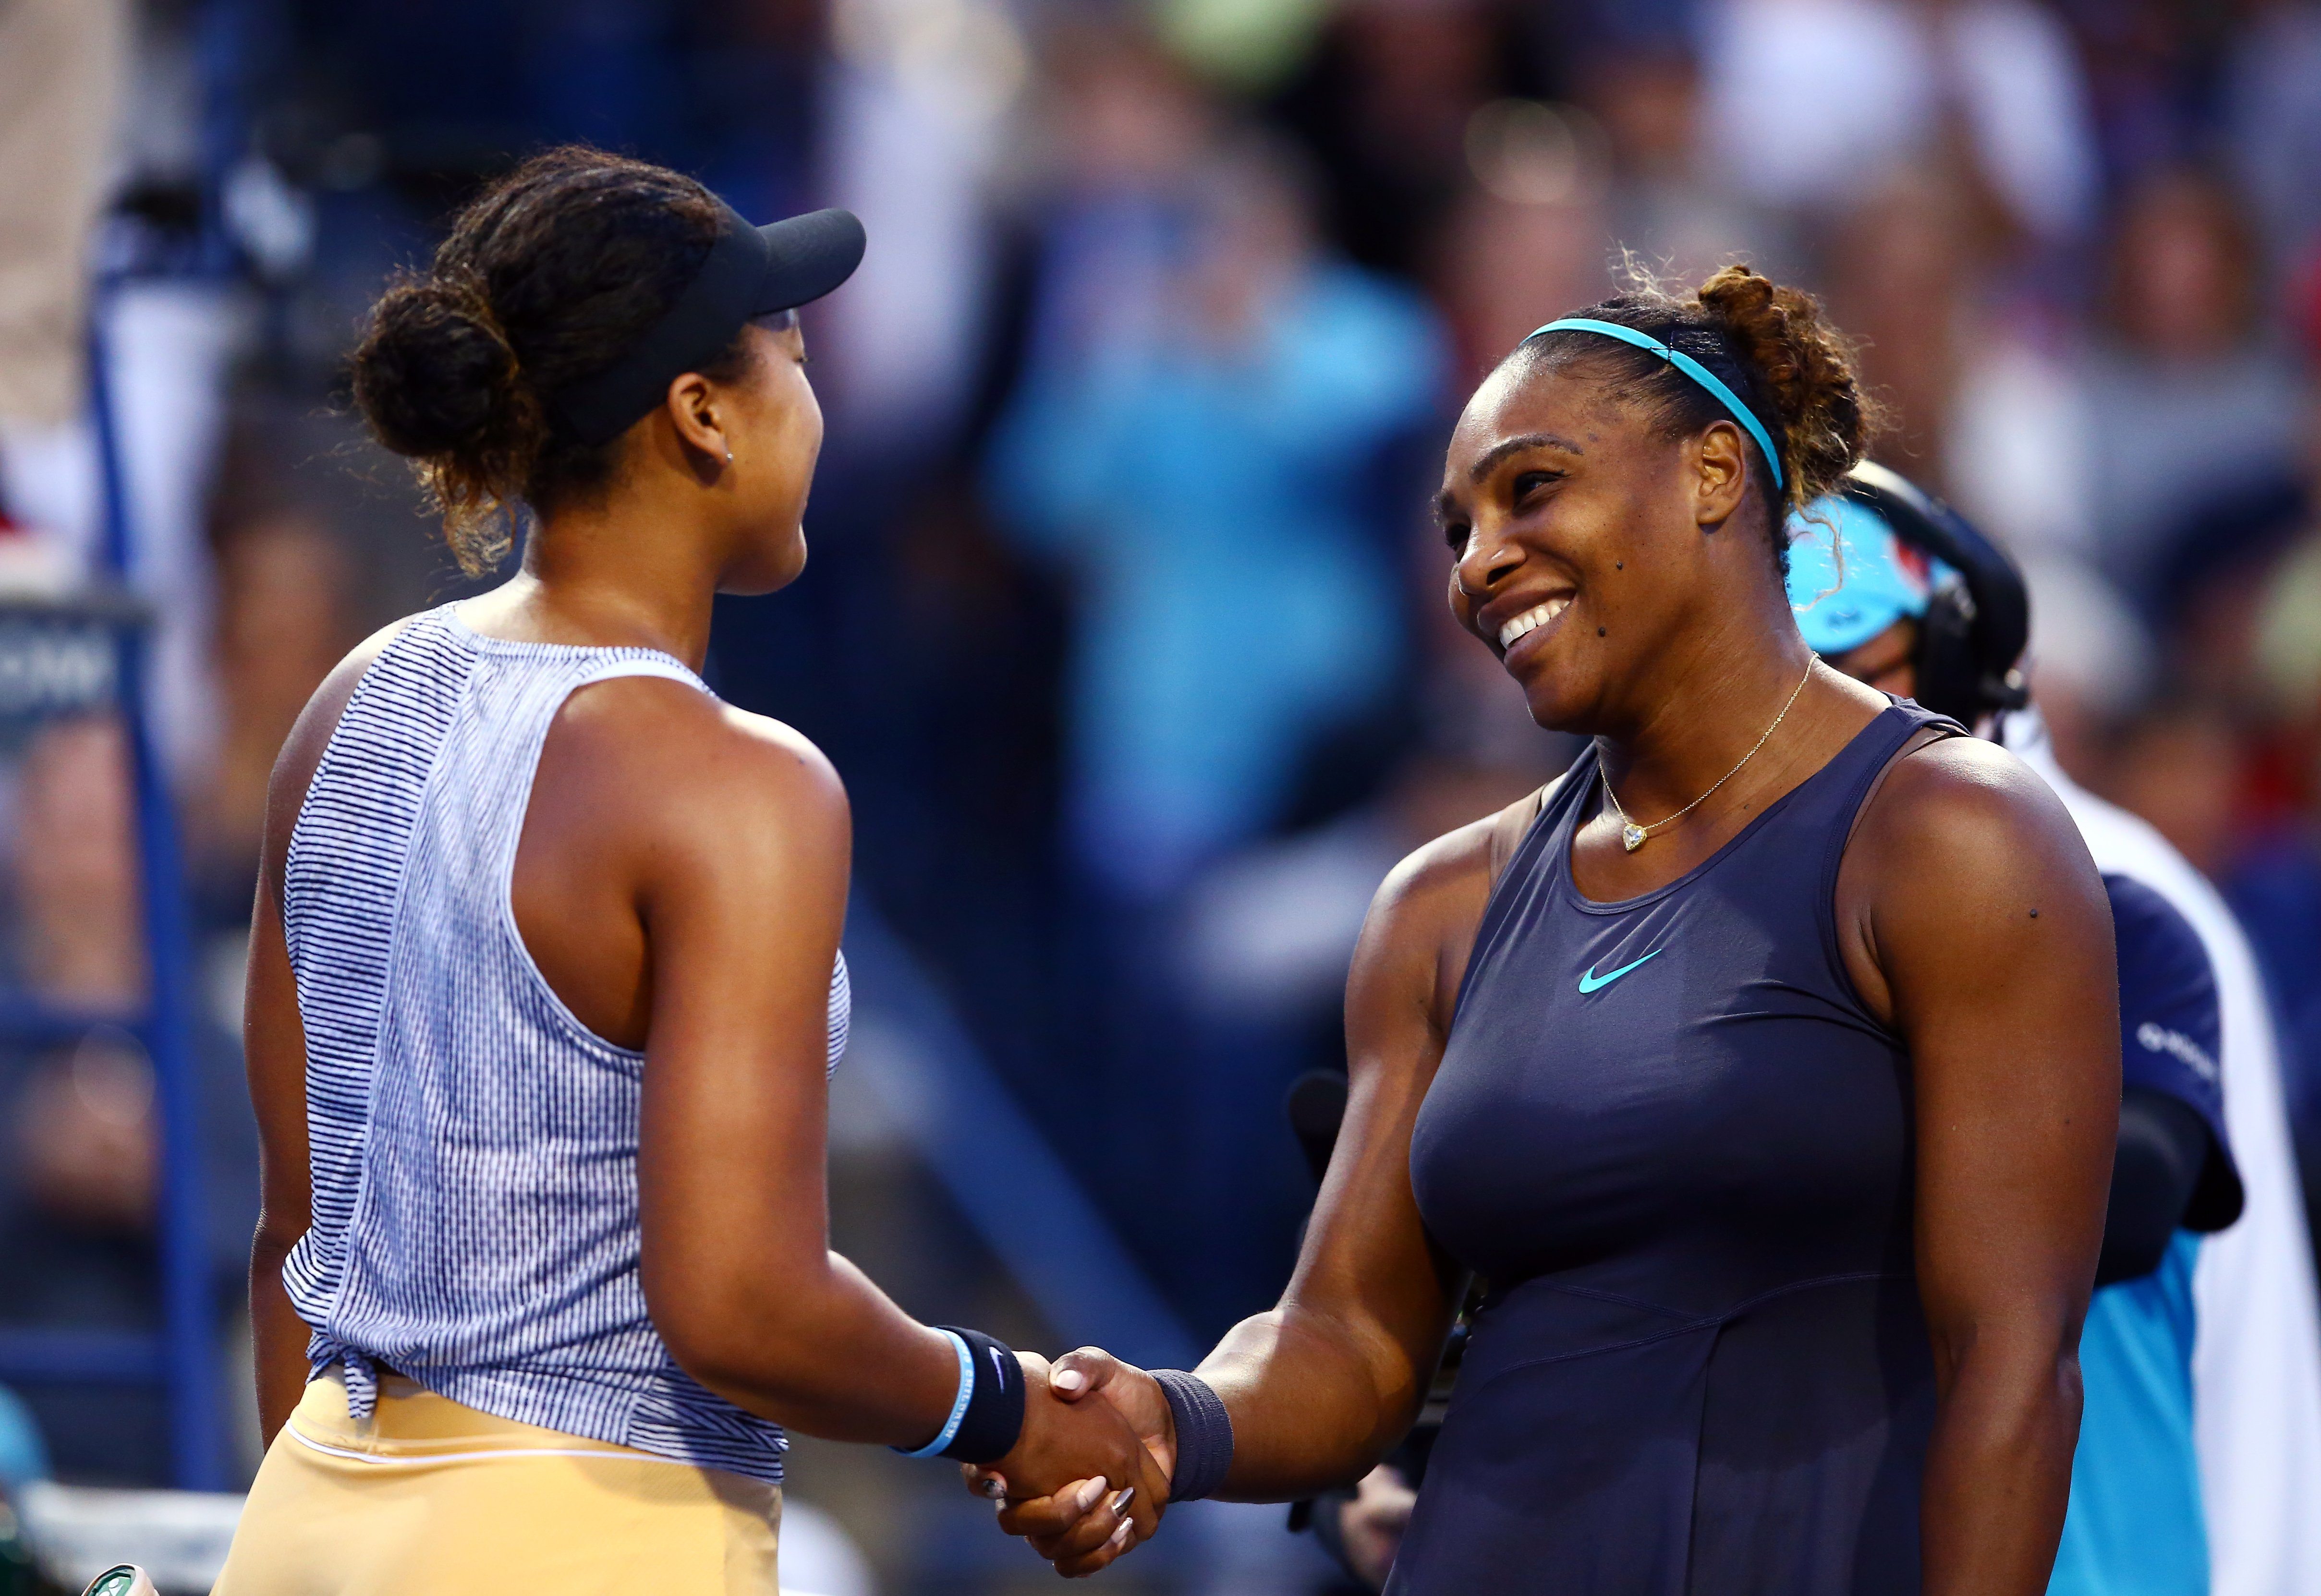 Serena Williams & Naomi Osaka shake hands following a quarterfinal match on Day 7 of the Rogers Cup in Toronto, Canada on Aug. 09, 2019.  Photo: Getty Images